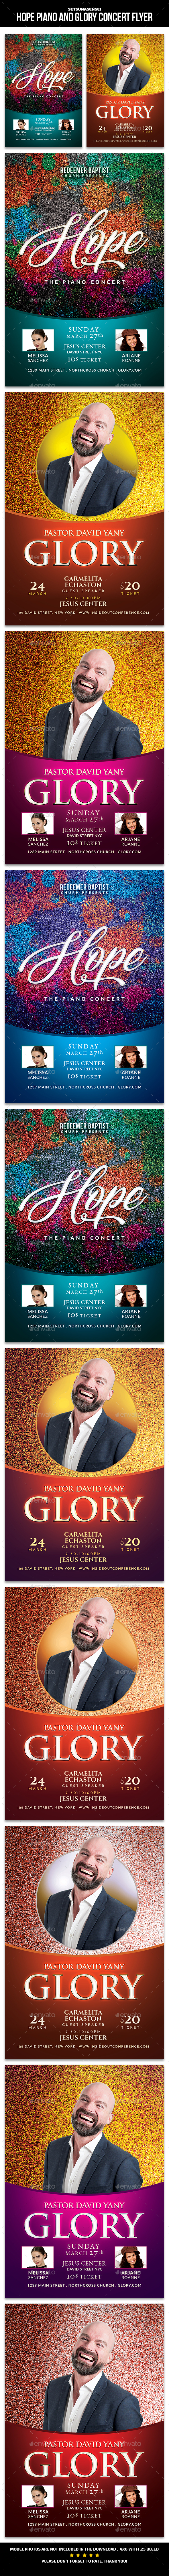 Hope Piano and Glory Concert Flyer - Church Flyers